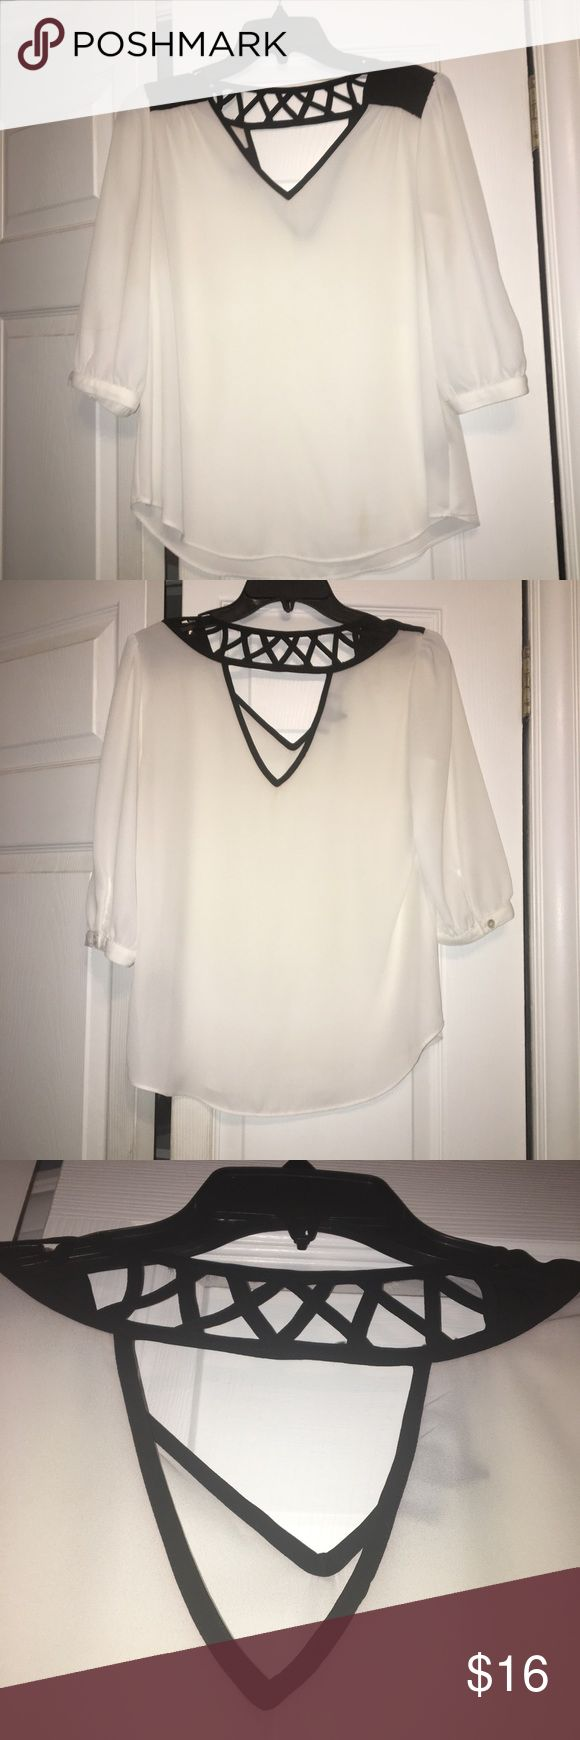 White dress blouse Black and white blouse. Sheer material, definitely need to wear white or nude underneath. Geometric cutout detailing on back. 3/4 sleeves, buttoned. 100% polyester BCX Tops Blouses